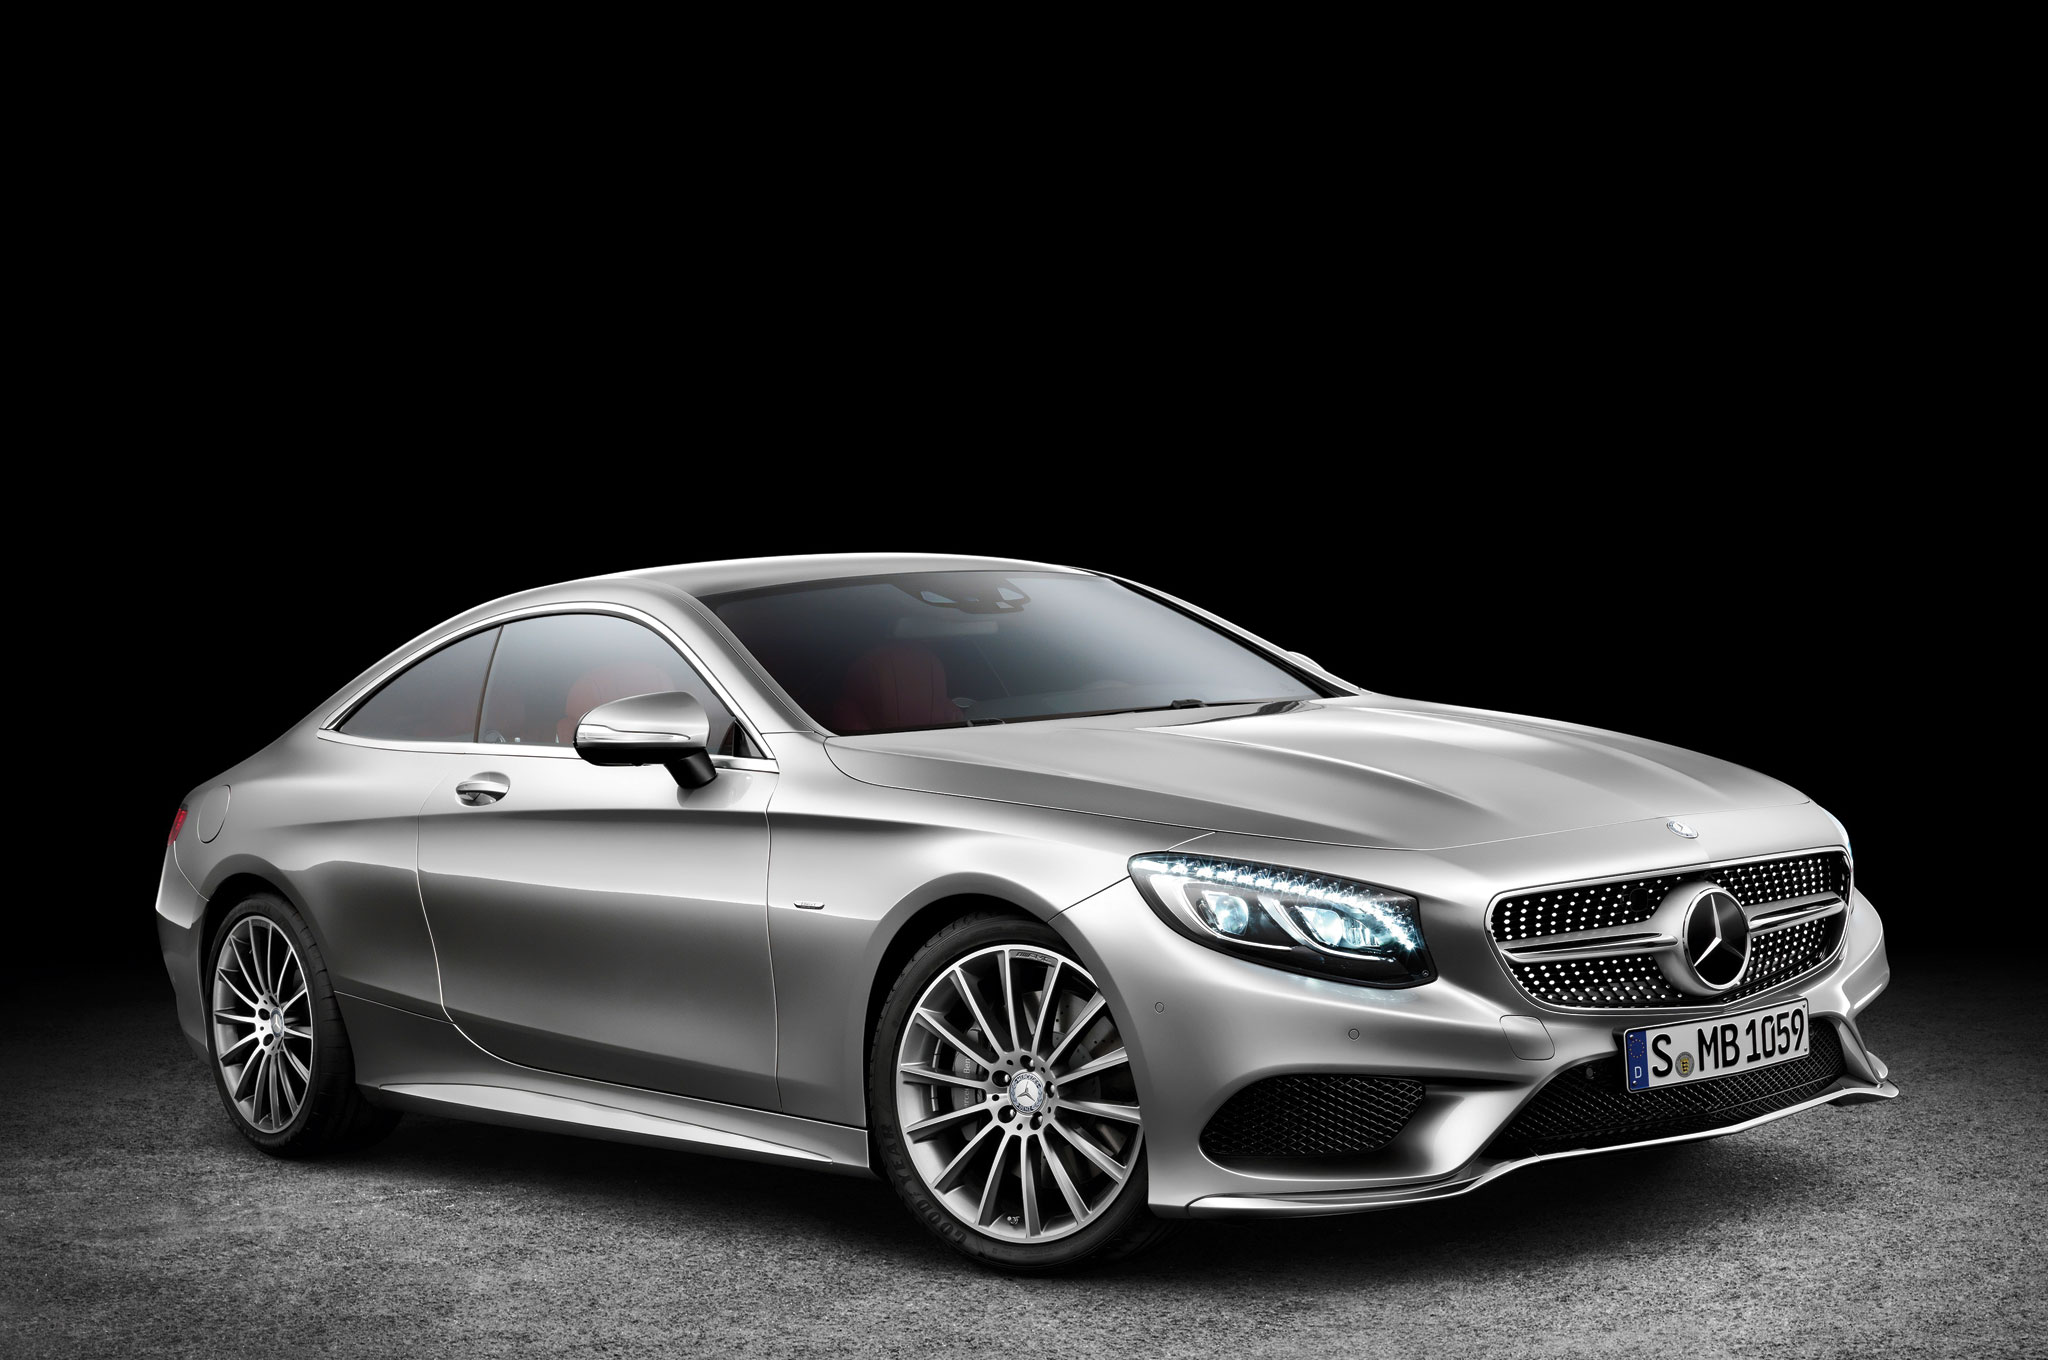 2015 Mercedes Benz S Class Coupe Front Three Quarter View